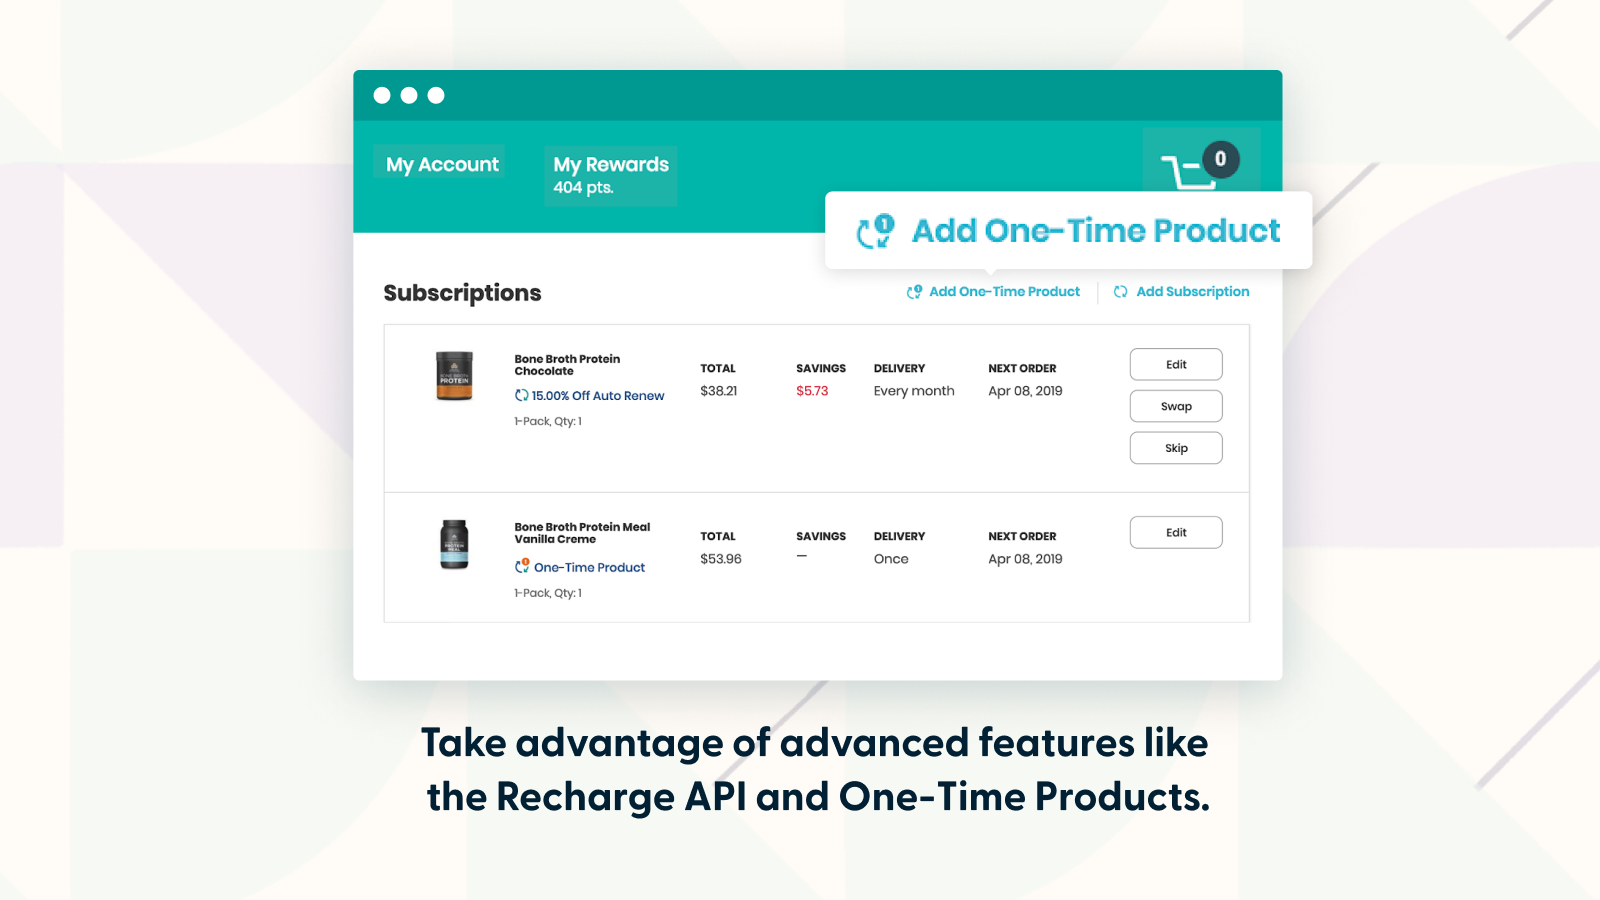 Recharge APIs and One-time Products